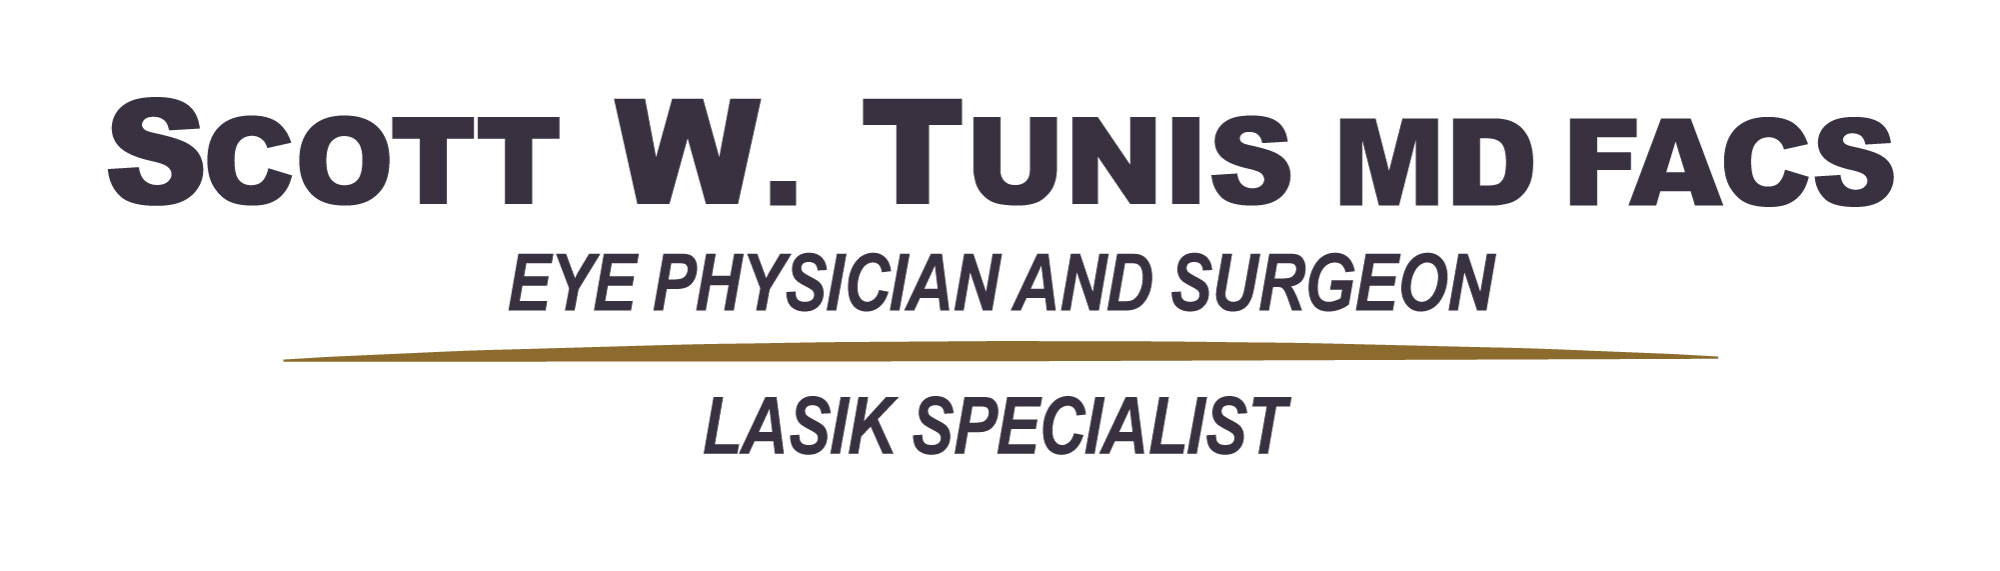 Scott W. Tunis MD FACS reviews | Laser Eye Surgery/Lasik at 1001 Military Cutoff Road - Wilmington NC